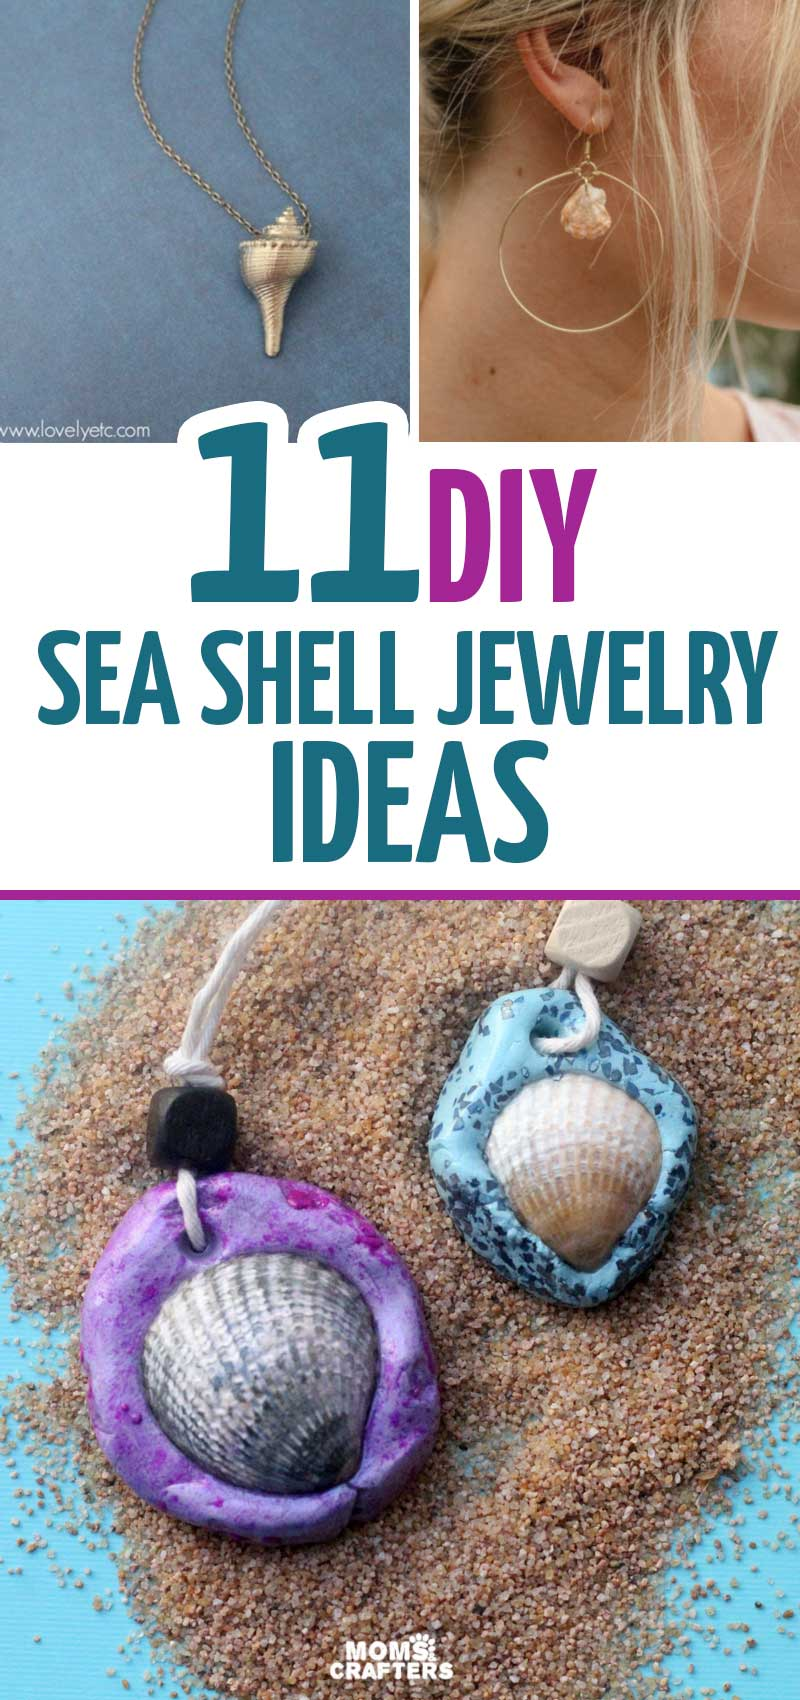 If you love seashell jewelry DIY ideas you'll love this list of seashell necklaces bracelets and earrings! These cool sea shell craft ideas are fun summer crafts for teens and tweens, and everyone else!